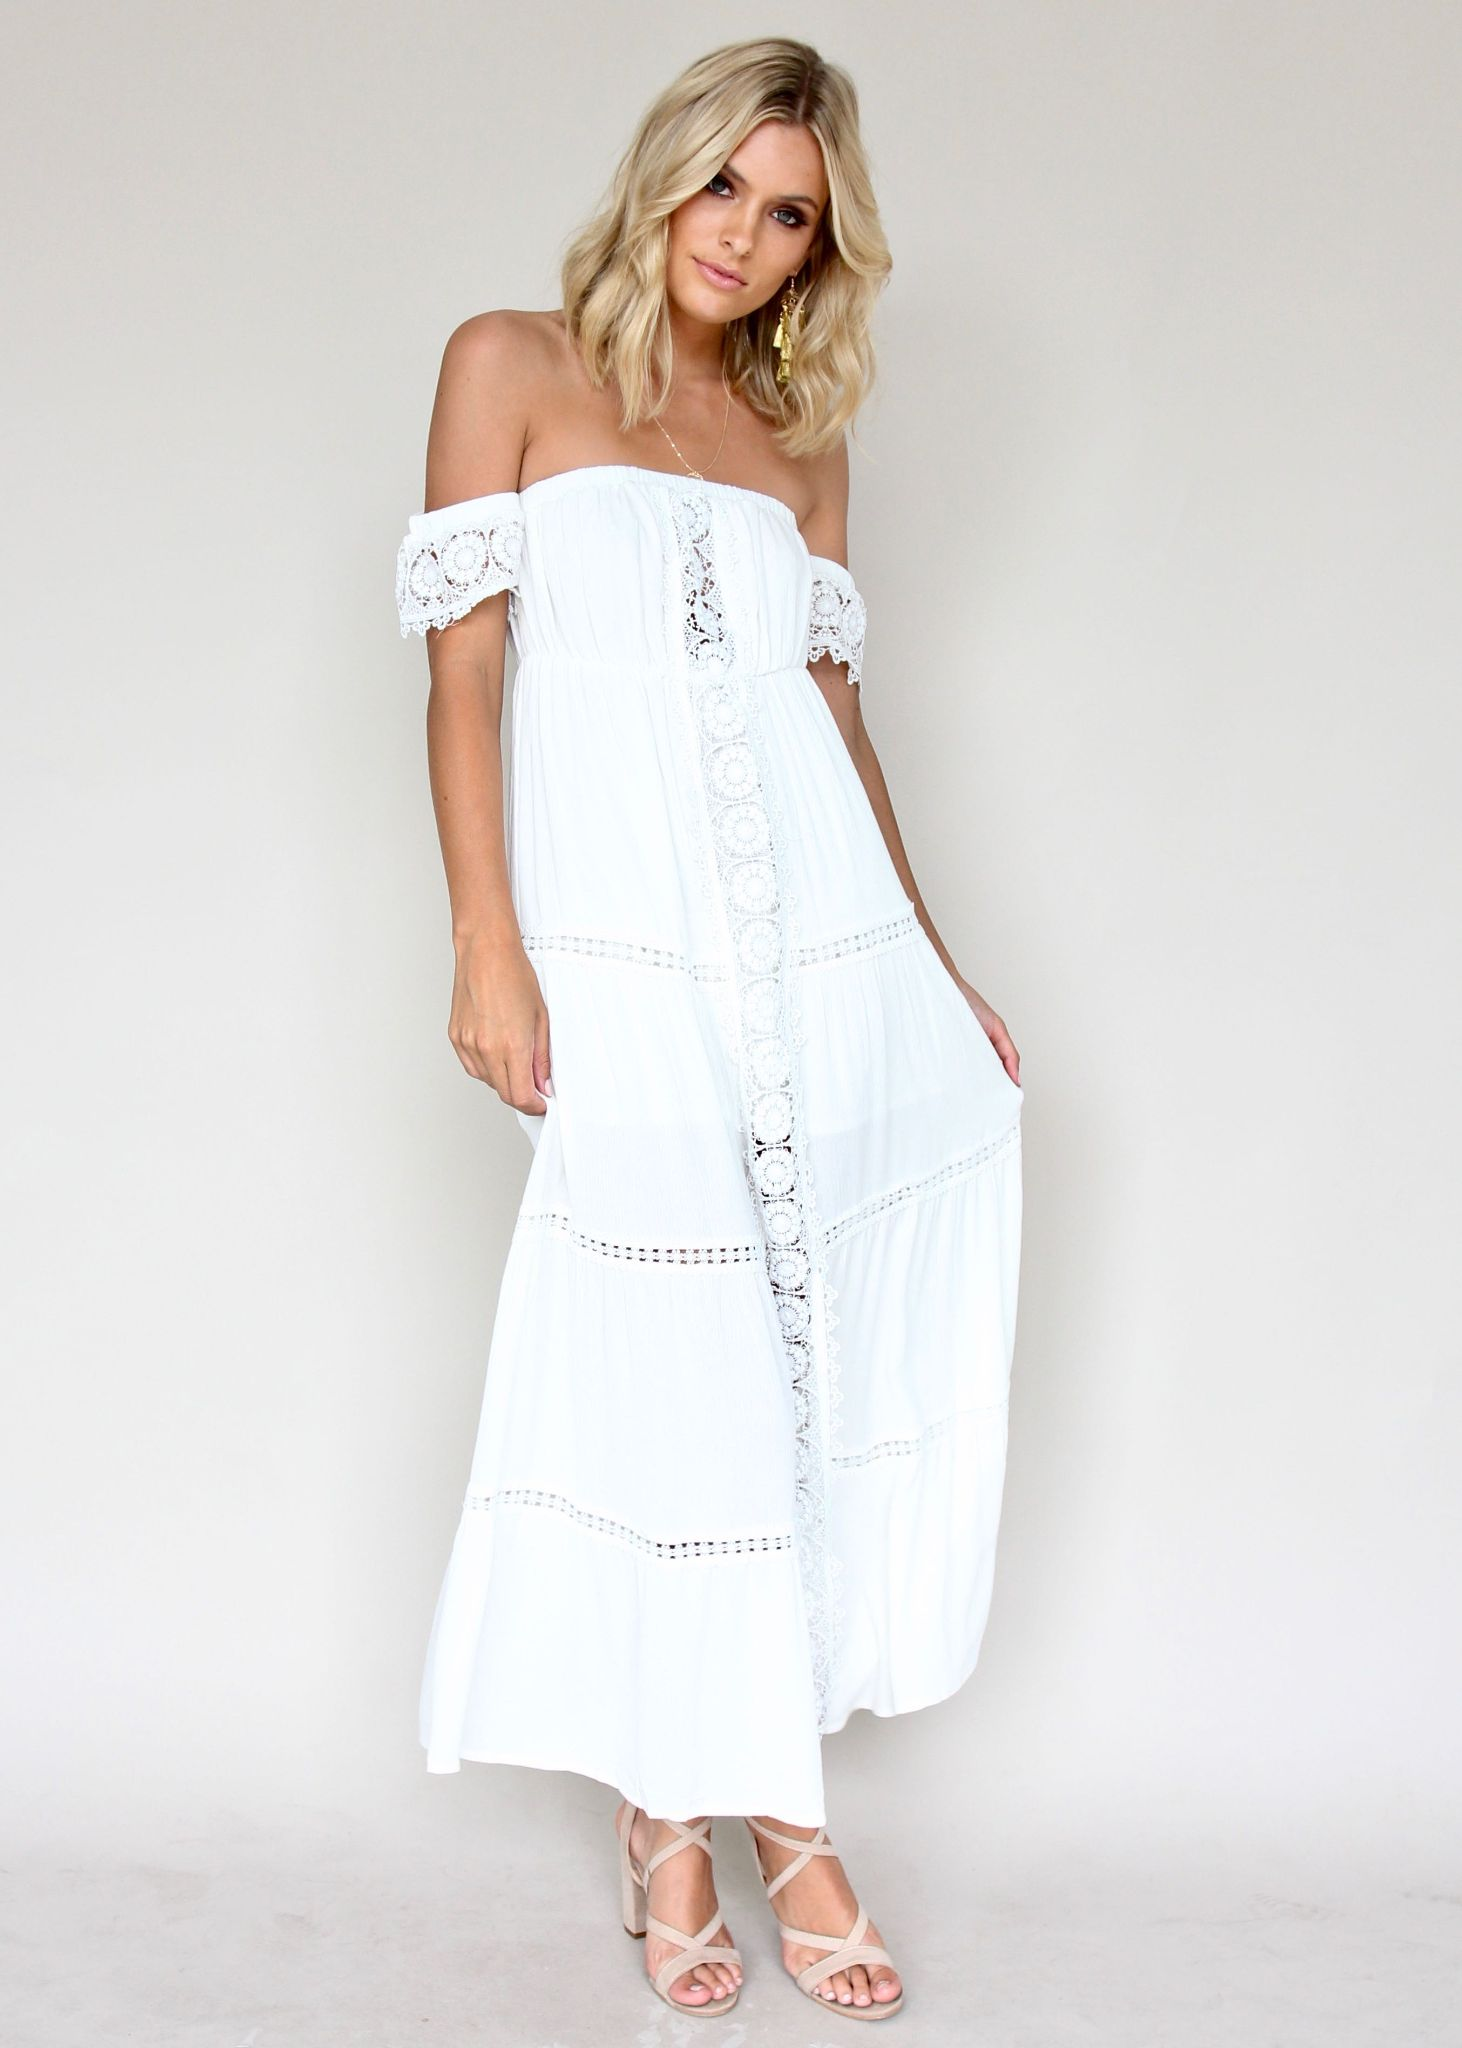 Roselle Off Shoulder Dress - White